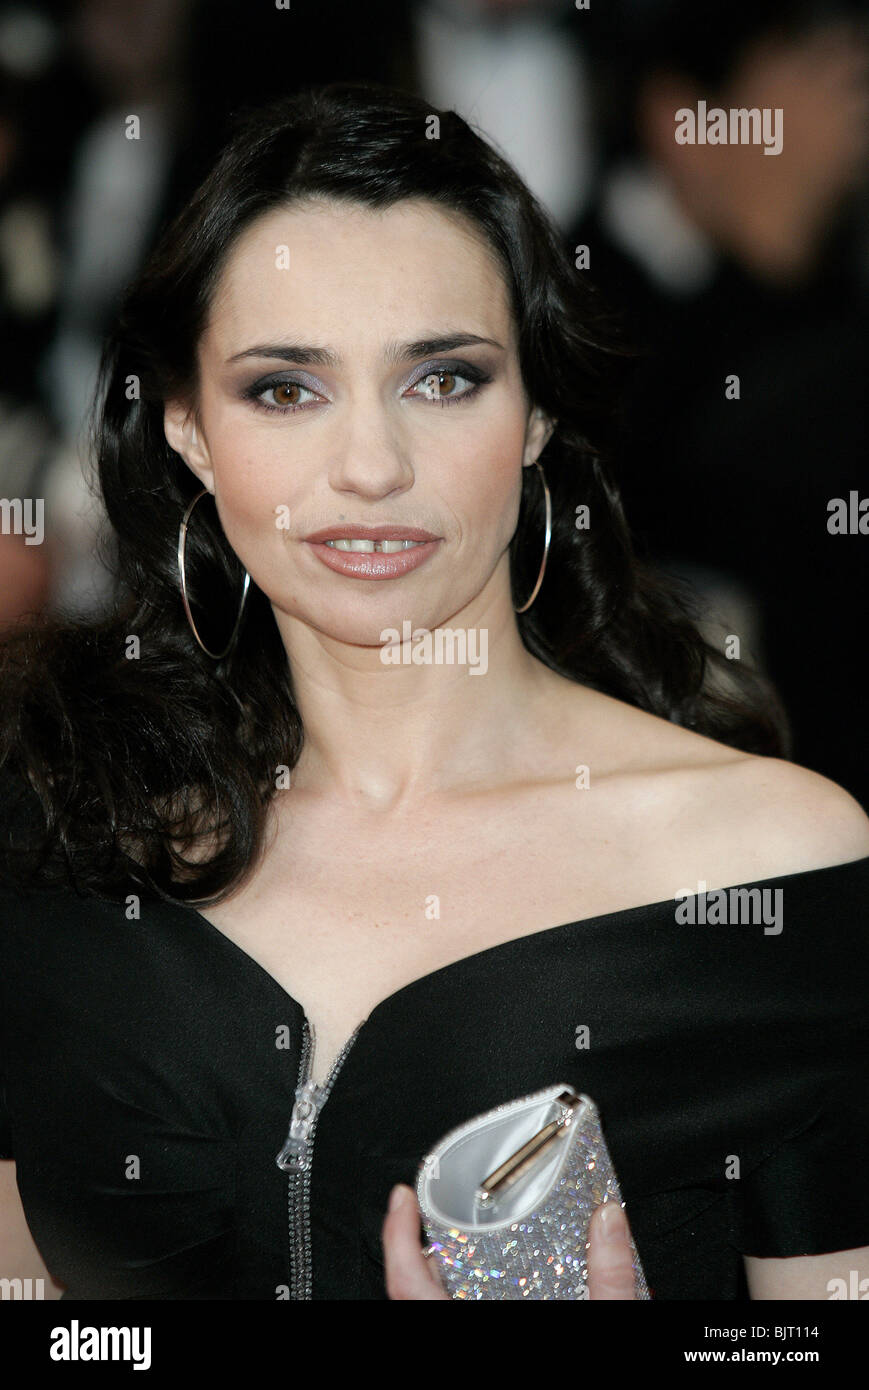 Celebrity Beatrice Dalle nudes (58 photos), Ass, Cleavage, Feet, legs 2015